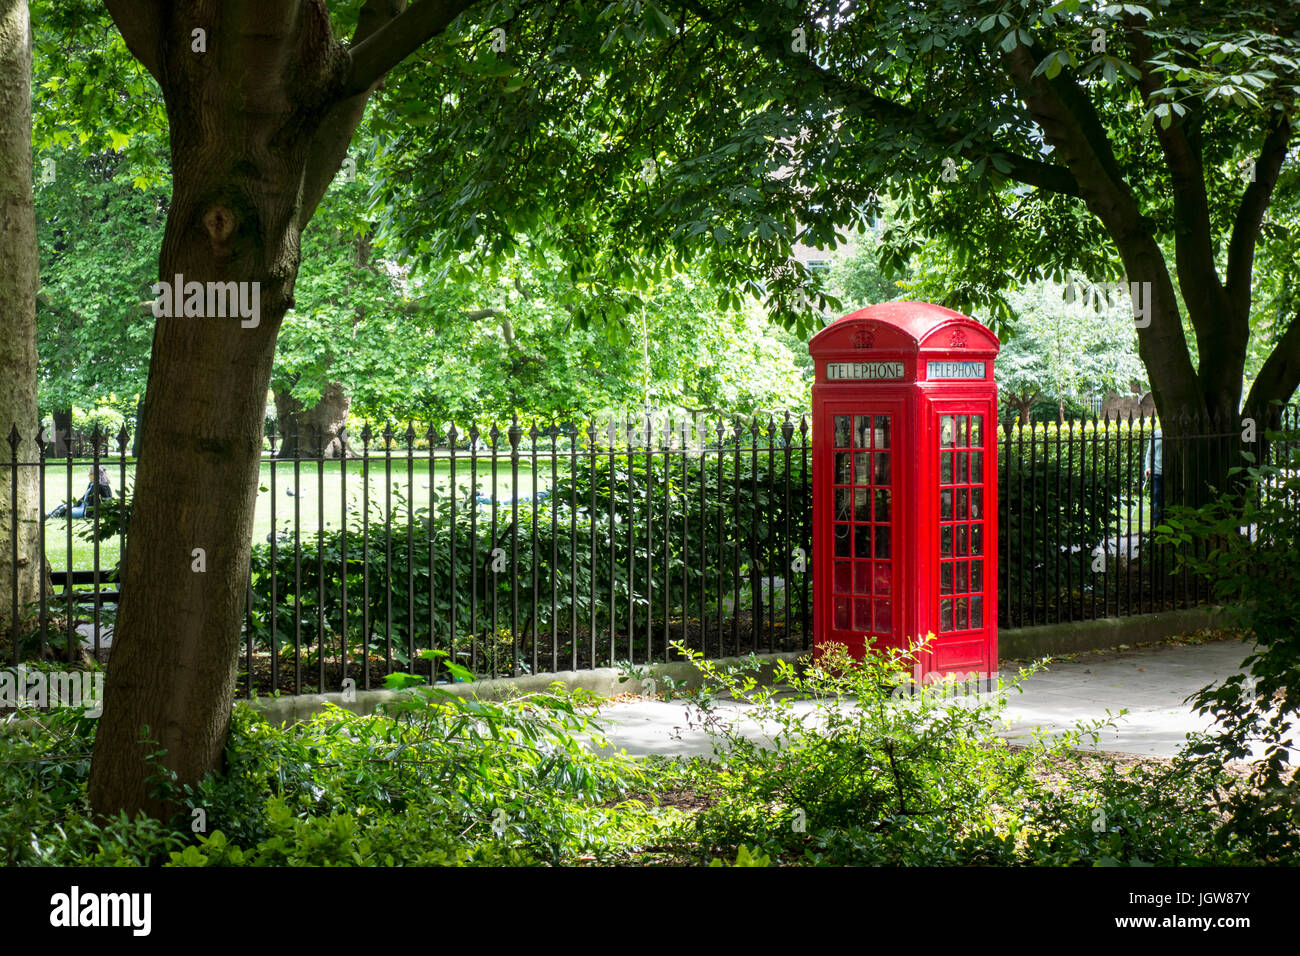 Traditional Telephone Box outside Brunswick Square Gardens, London, UK - Stock Image